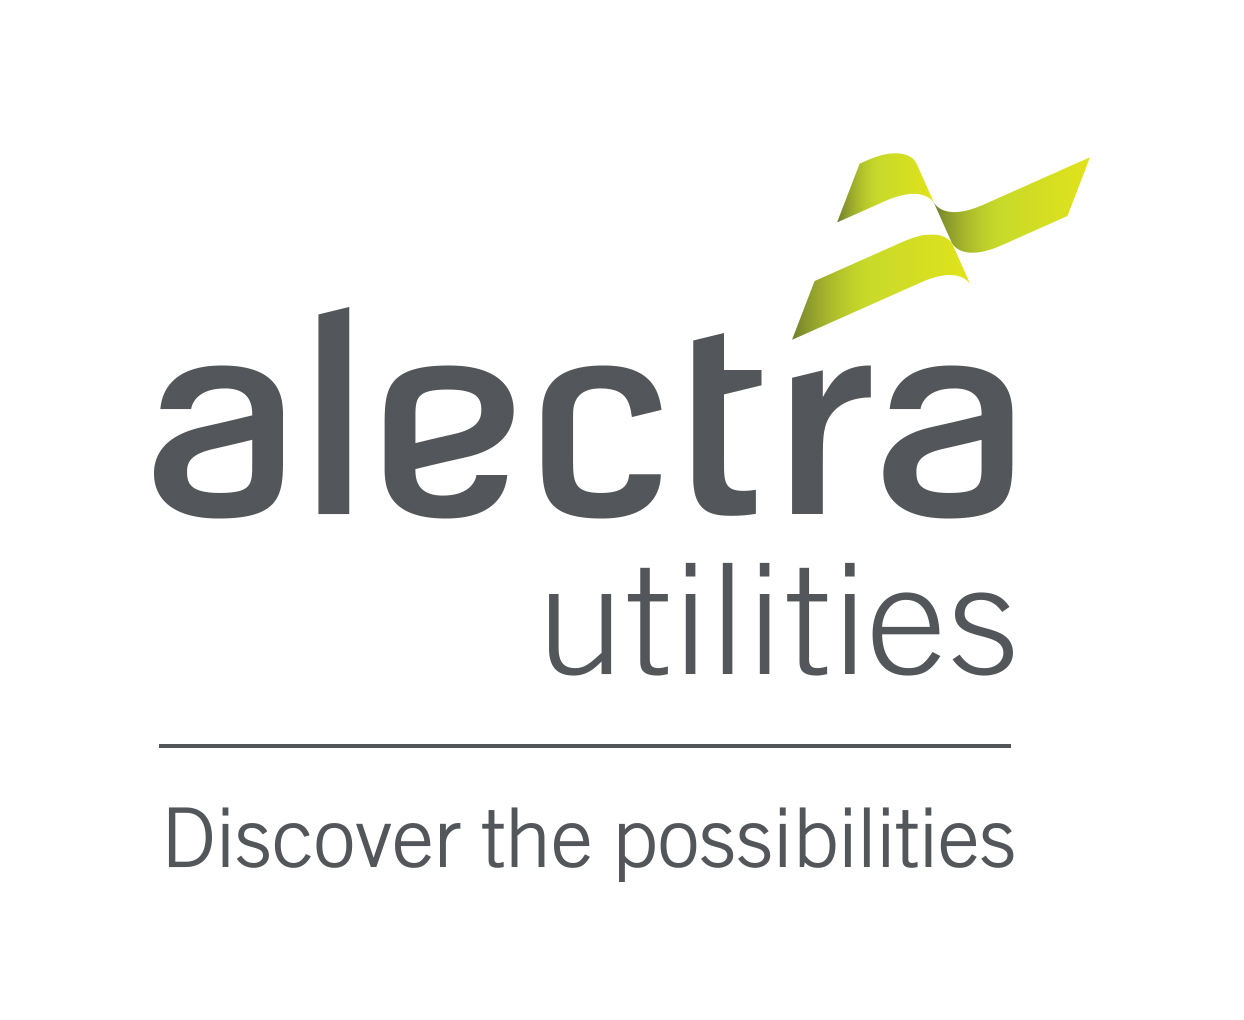 alectra utilities | Discover the possibilities Logo